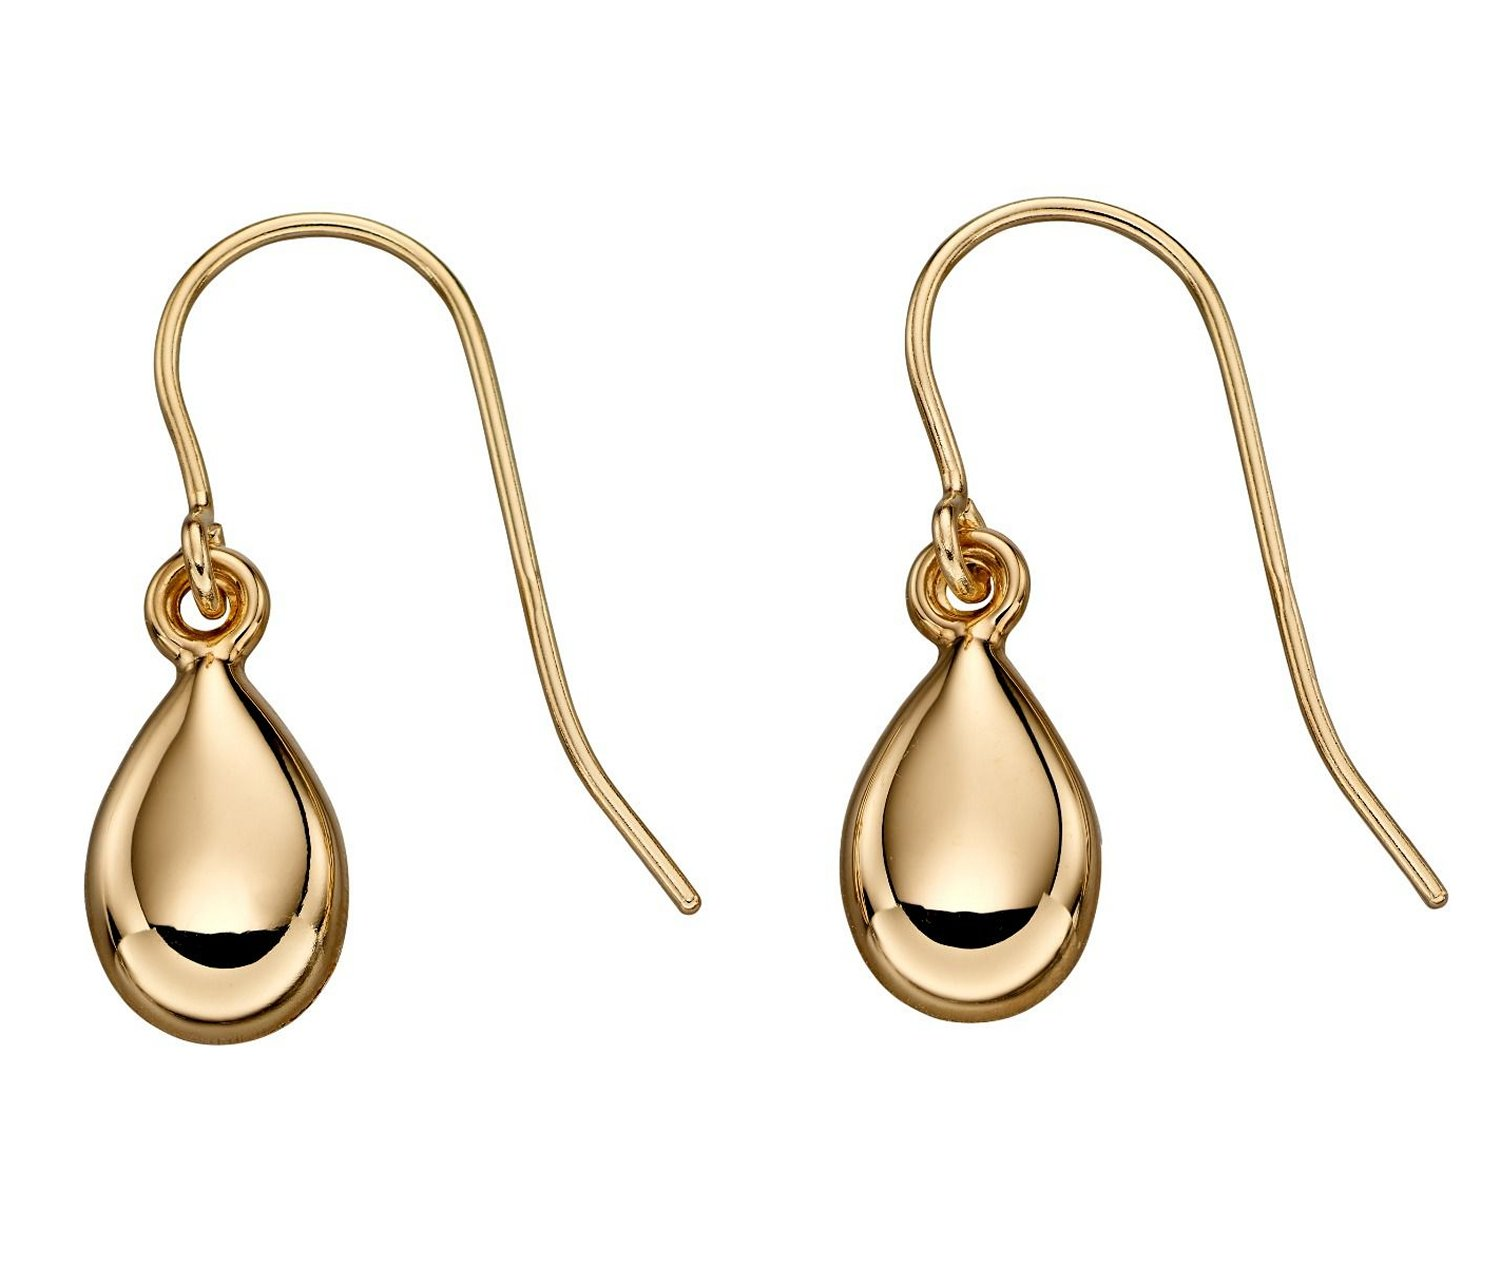 9k Yellow Gold Teardrop Earrings by Elements Gold - GE2217 - Charming And Trendy Ltd